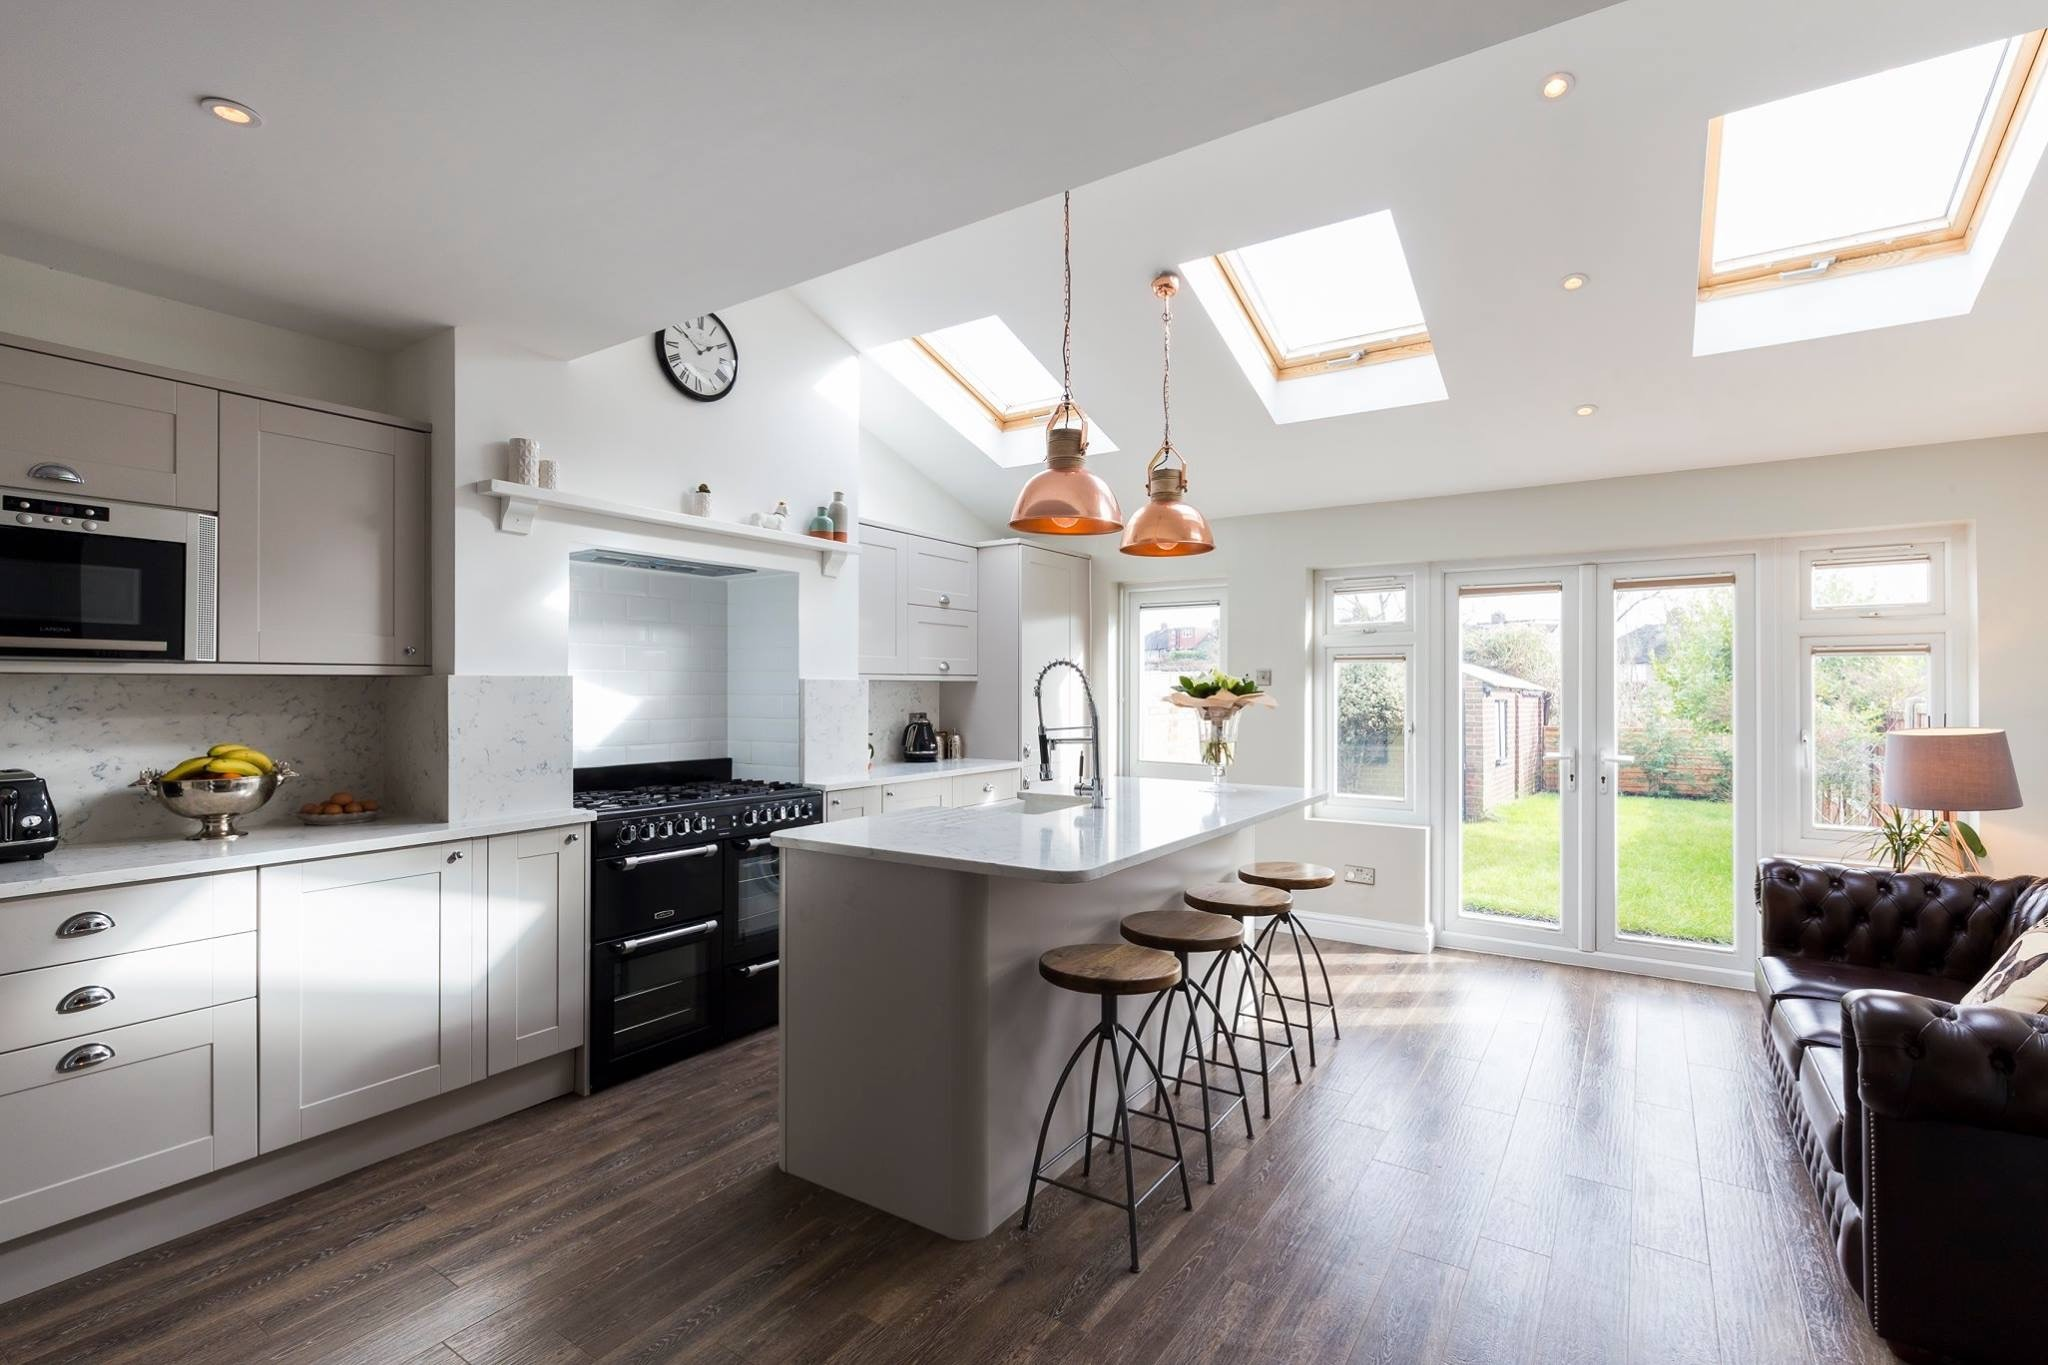 Kitchen Extension & Refurbishment in Herne Hill, London SE24